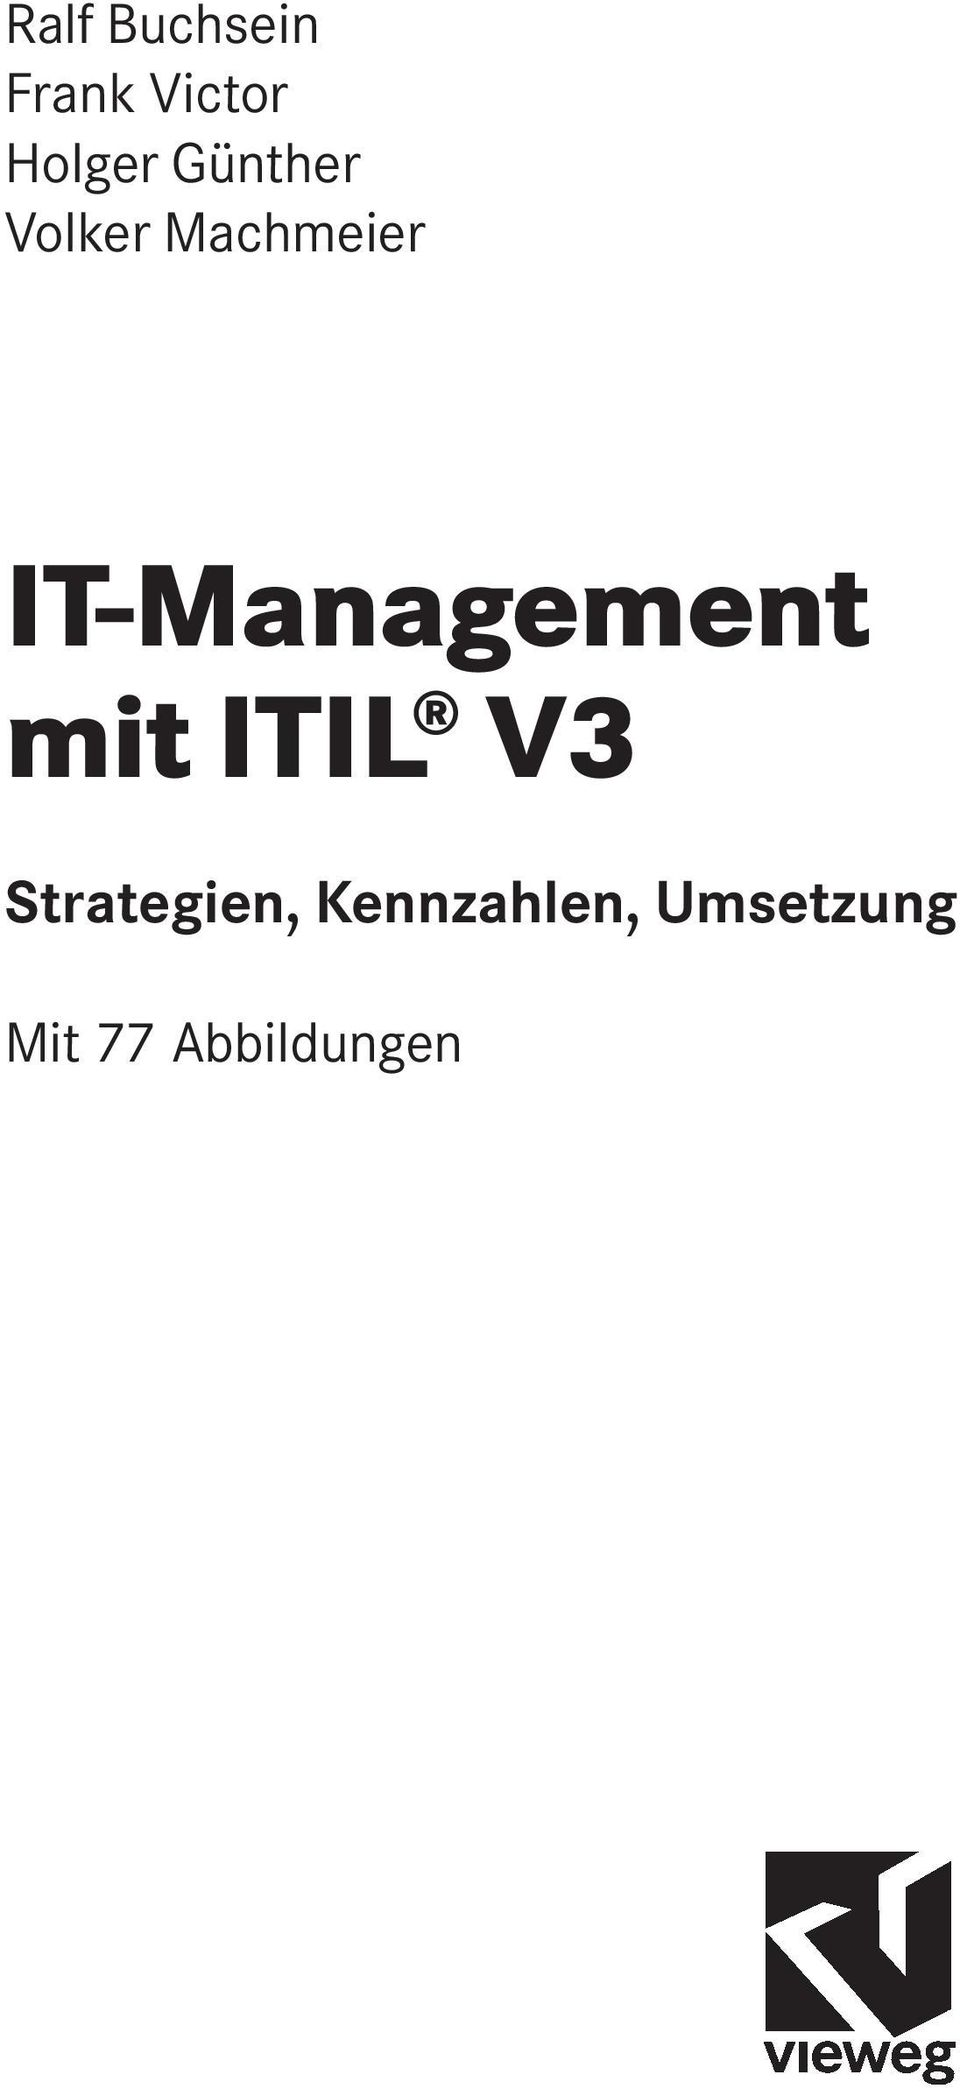 IT-Management mit ITIL V3